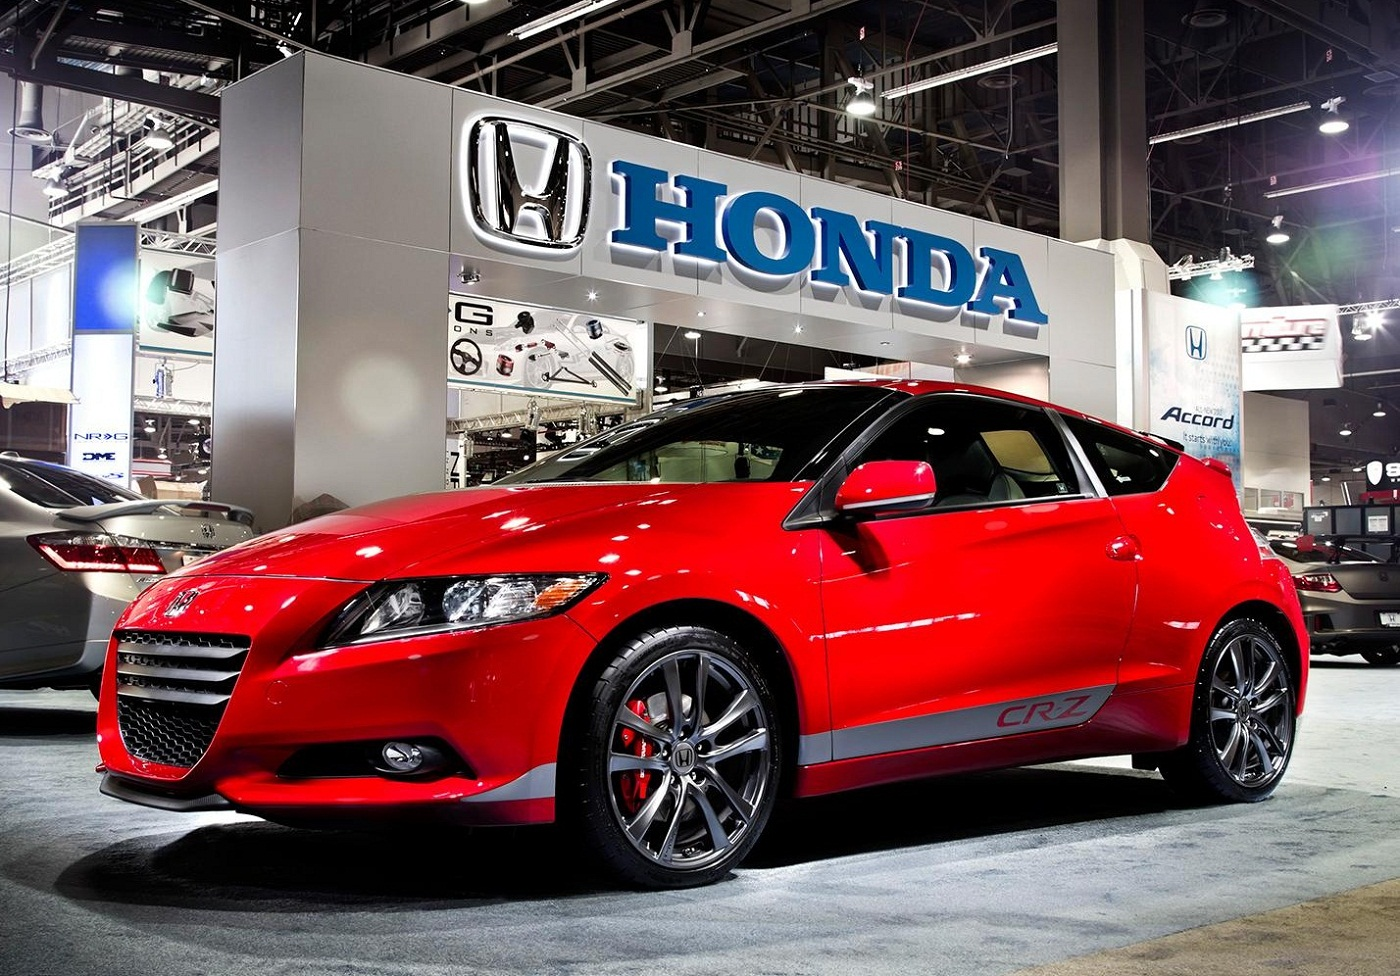 38 The Best 2019 Honda Crz Pricing